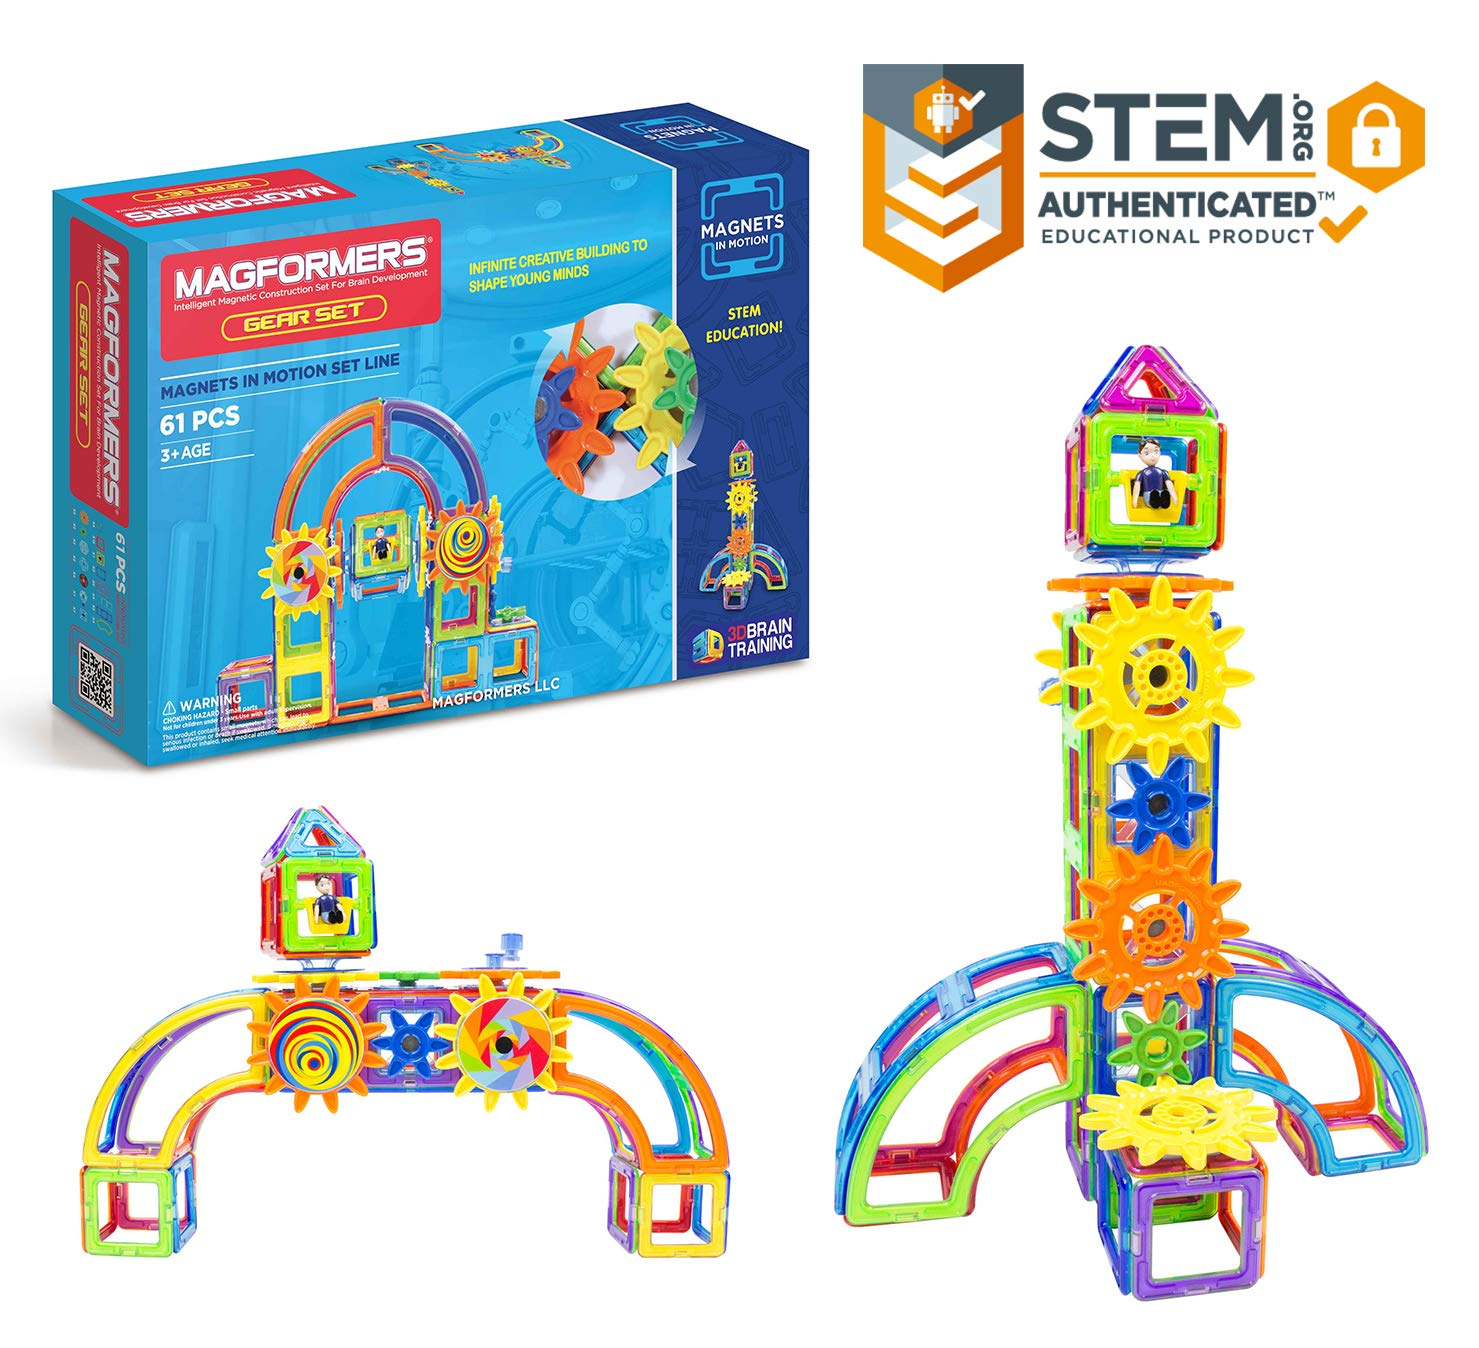 Magformers Magnets in Motion Set (61-Pieces) Magnetic    Building      Blocks, Educational  Magnetic    Tiles Kit , Magnetic    Construction  STEM Gear Set by Magformers (Image #1)